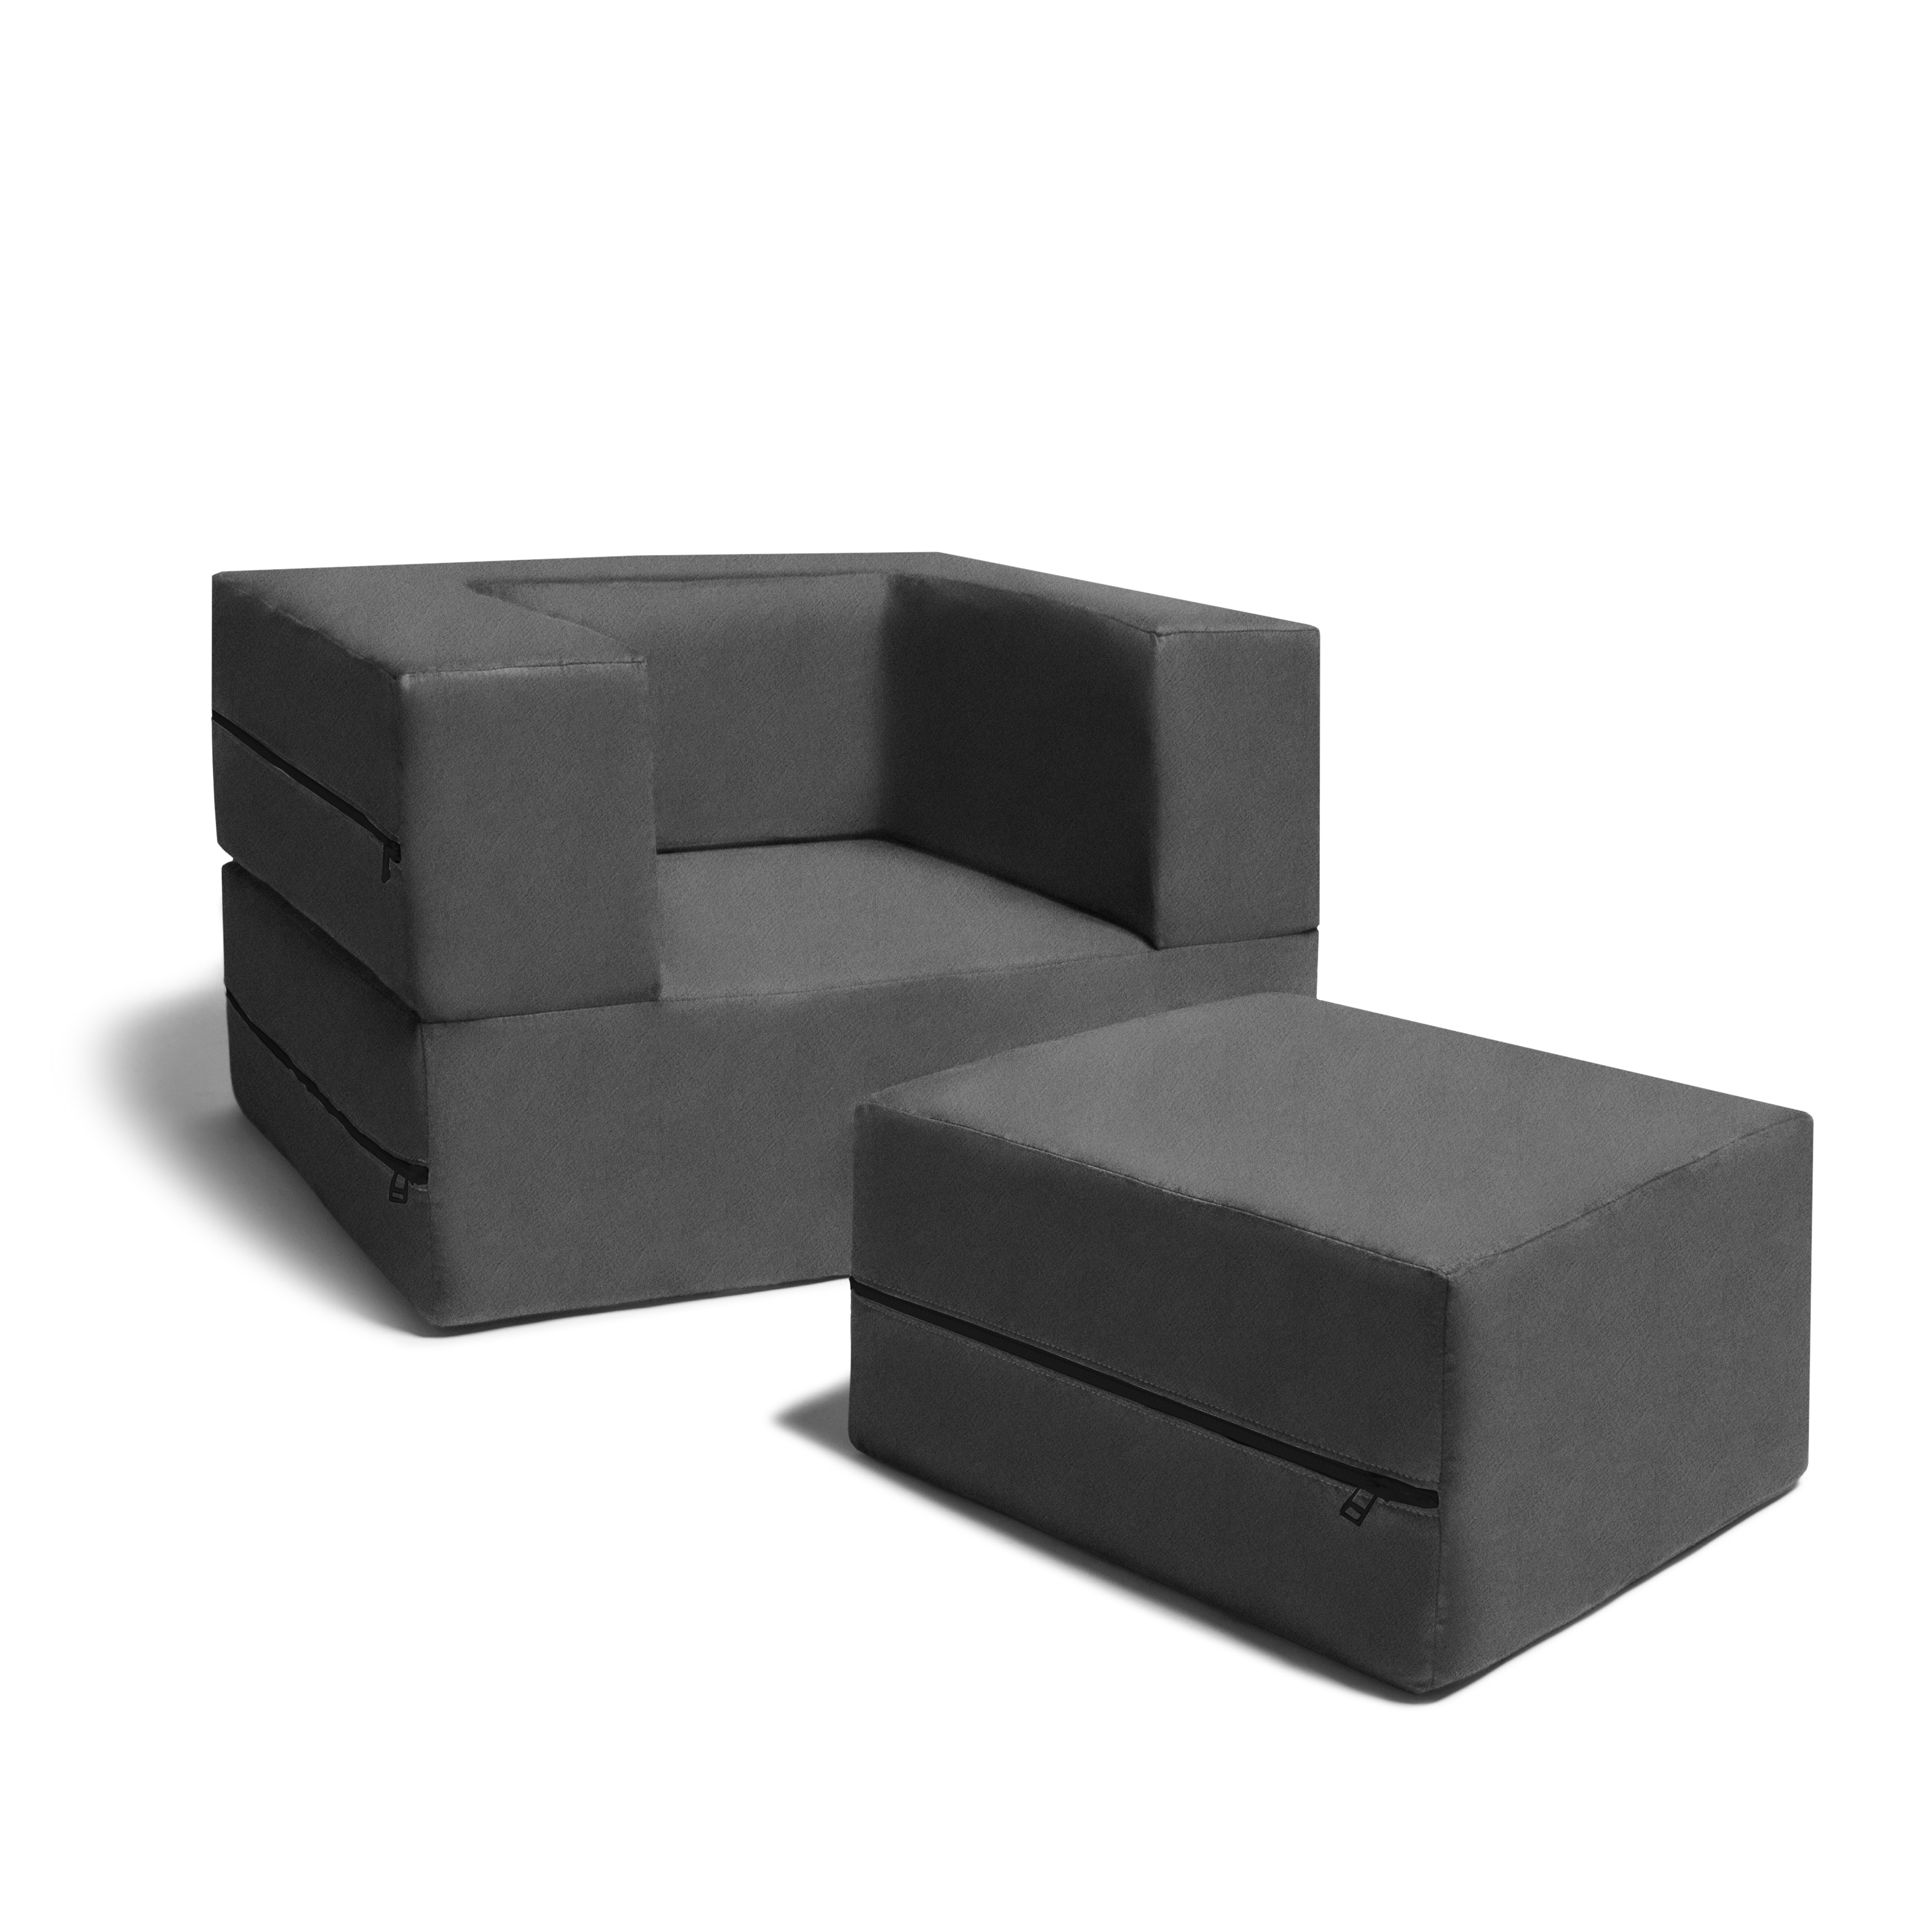 chair today garden shipping loveseat chairs piece ottomans product brands rst patio free bliss home overstock set and